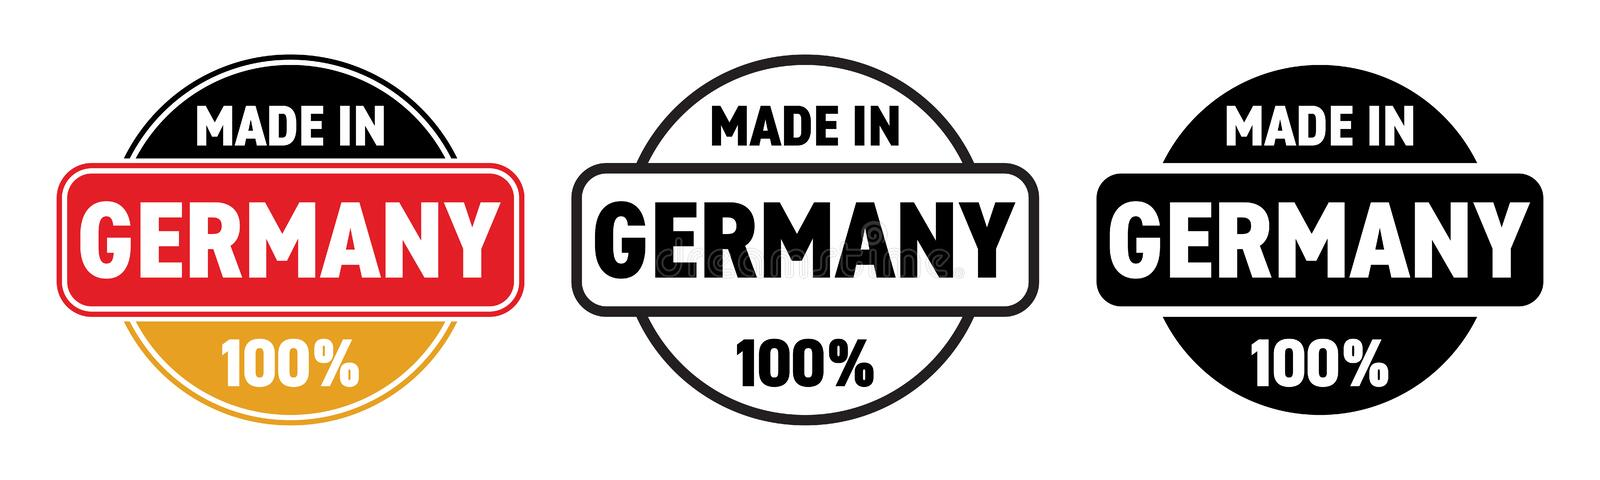 Made in Germany vector icon. German made quality product label, 100 percent package stamp. Made in Germany vector icon. German made quality product label, 100 stock illustration